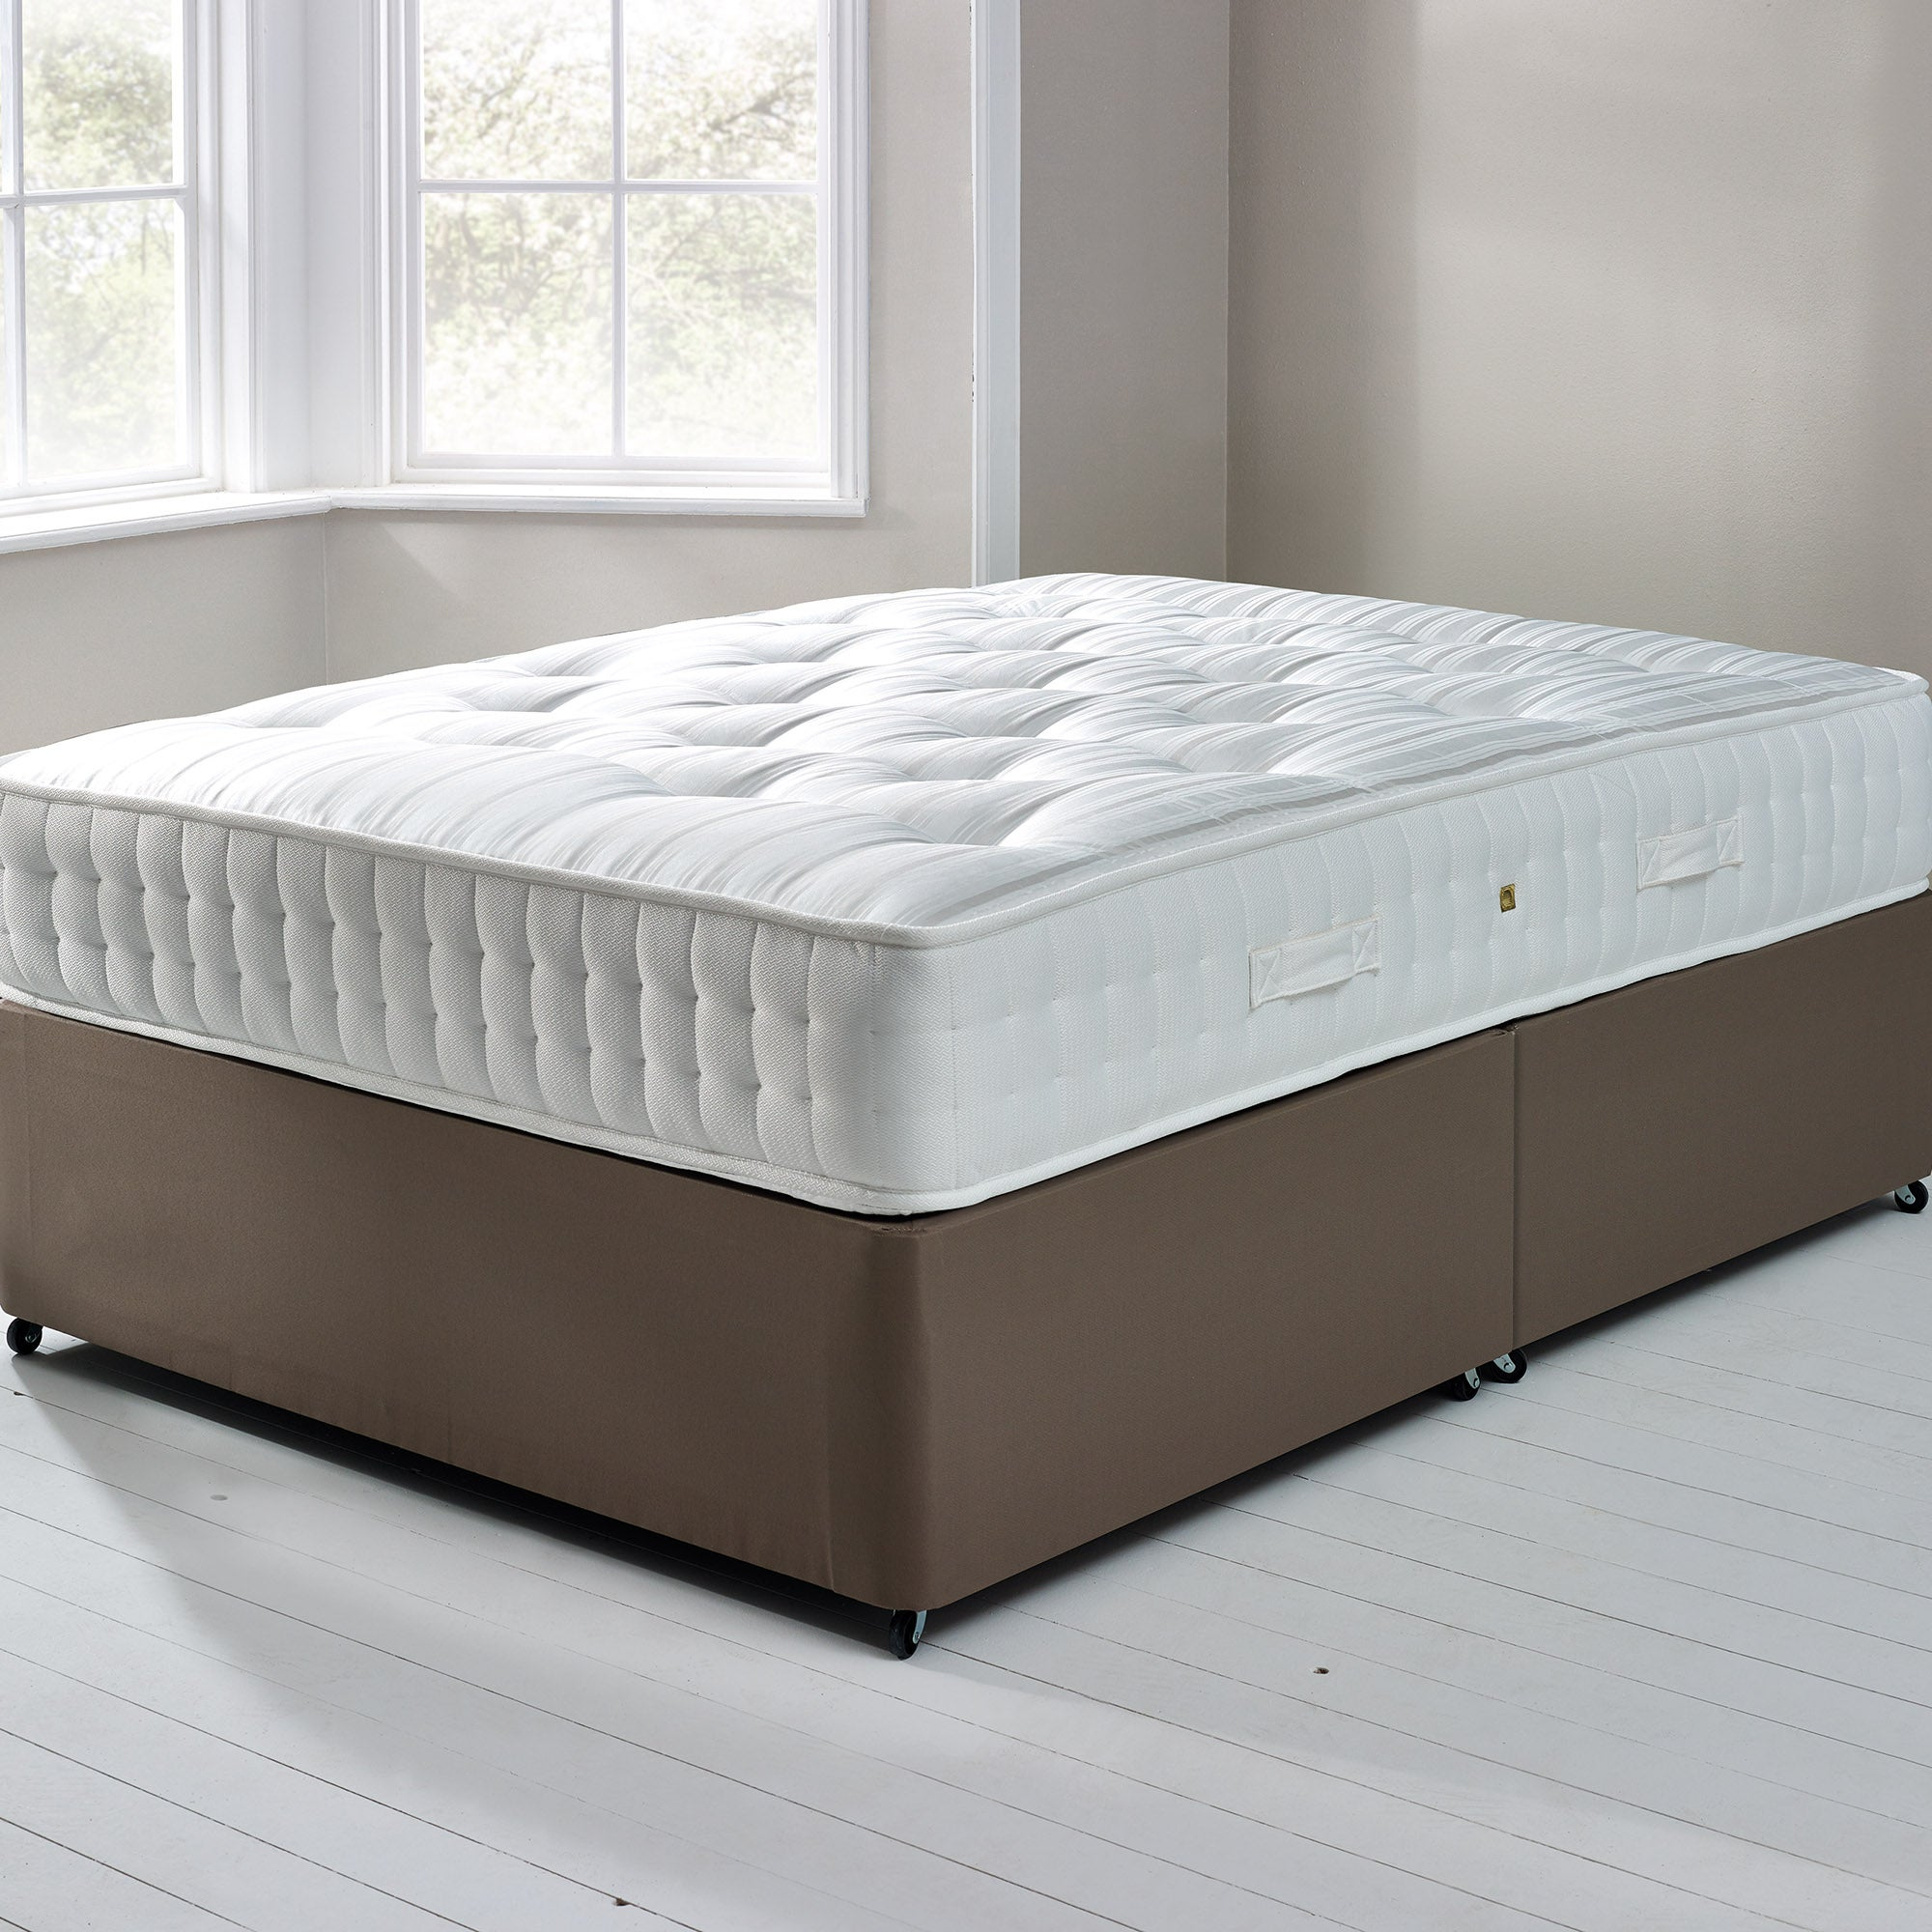 Fogarty Orthopaedic 1500 Mattress and Divan Collection